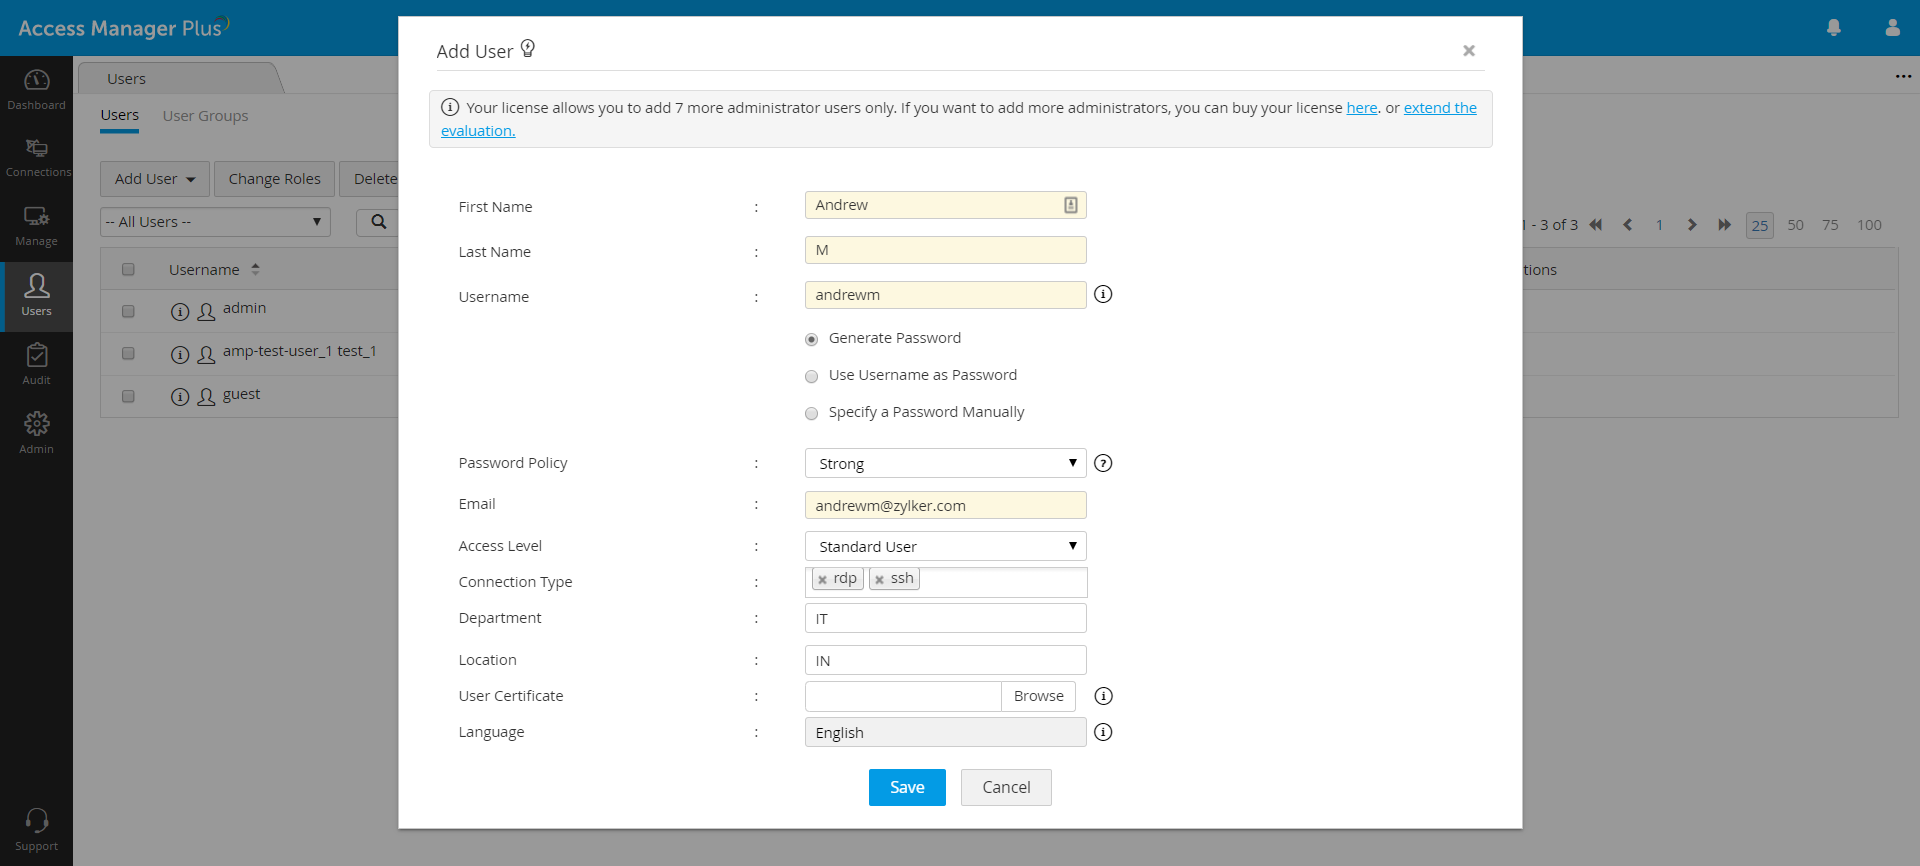 Adding a user manually in Access Manager Plus